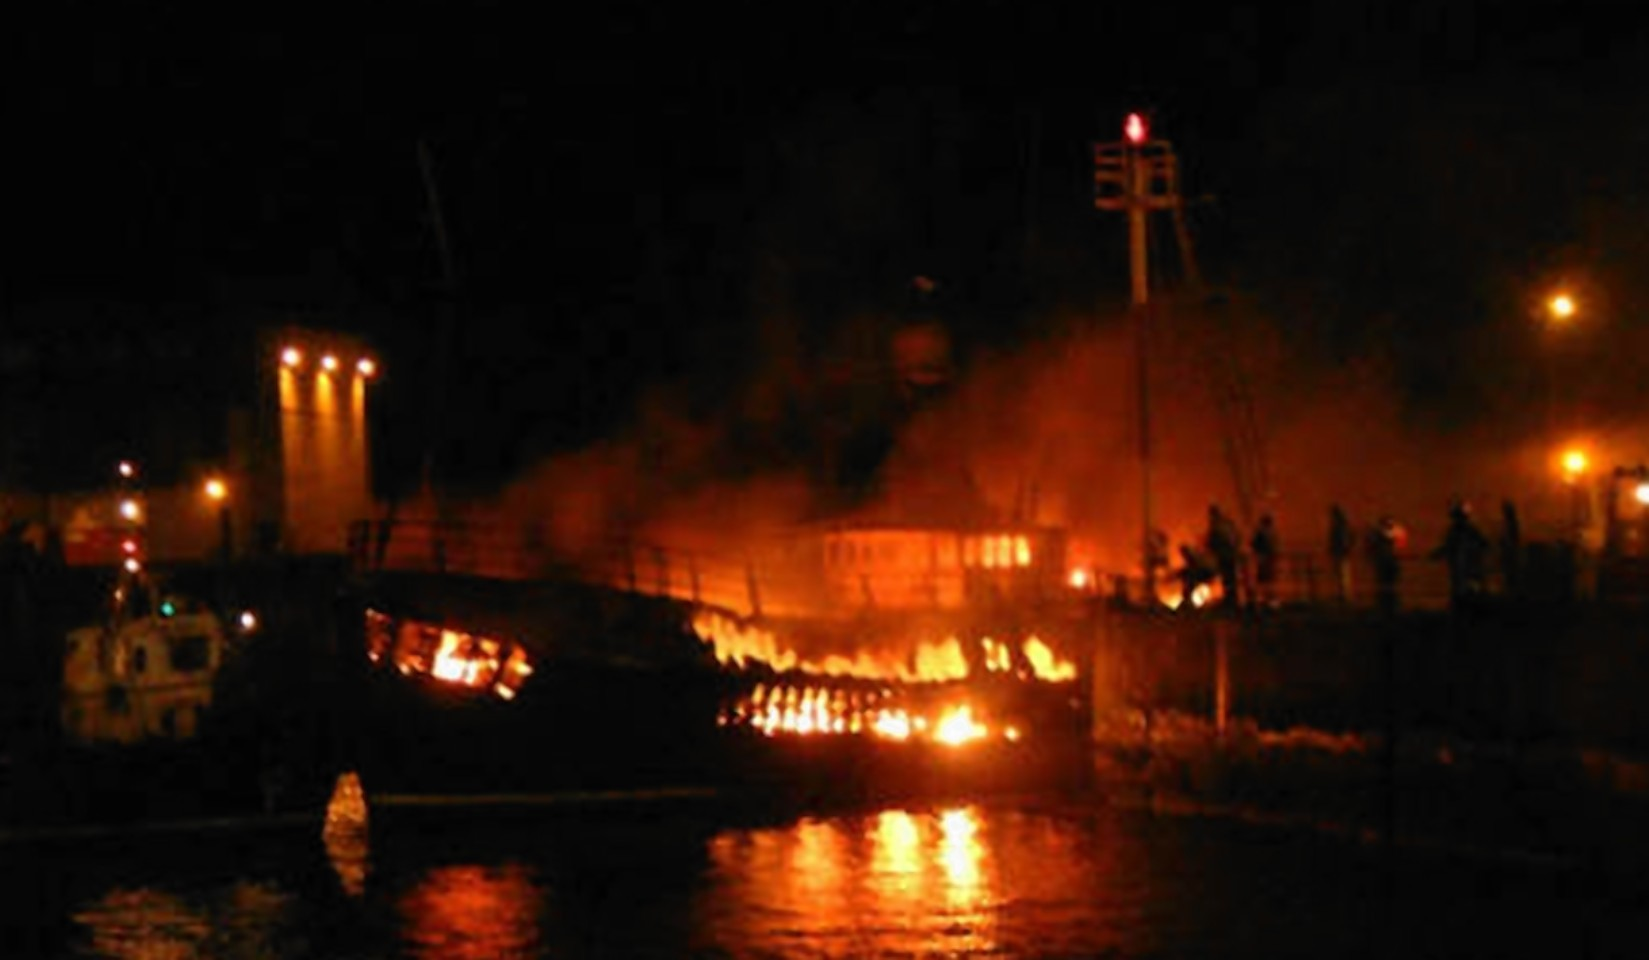 A maritime response team could soon be based in Peterhead. Pictured: A fire on a north-east boat several years ago.